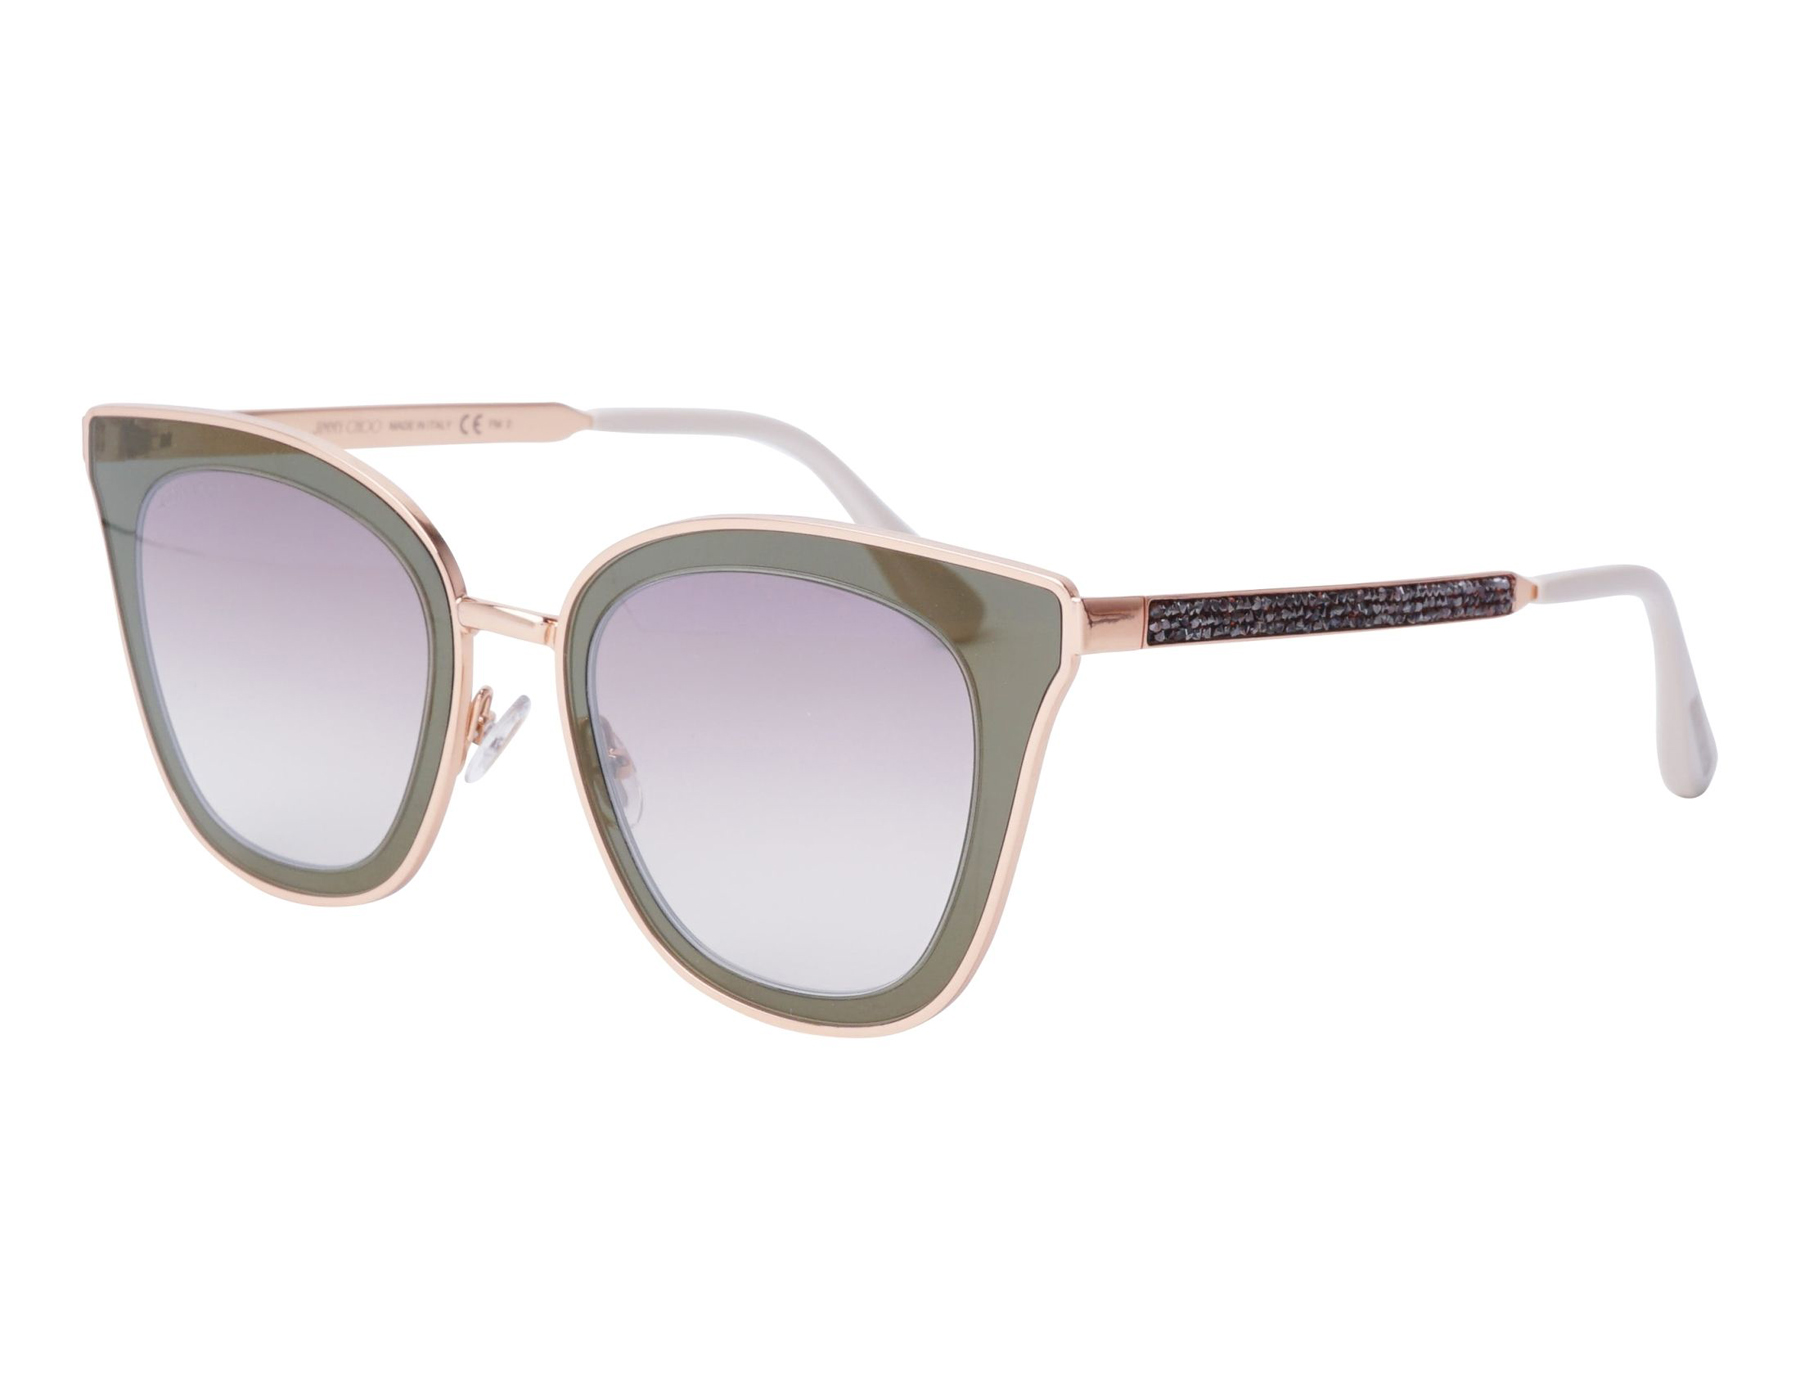 a8732e499aff Details about NEW Jimmy Choo Lory YK9 NQ Gold Brown Glitter   Grey Brown  Sunglasses